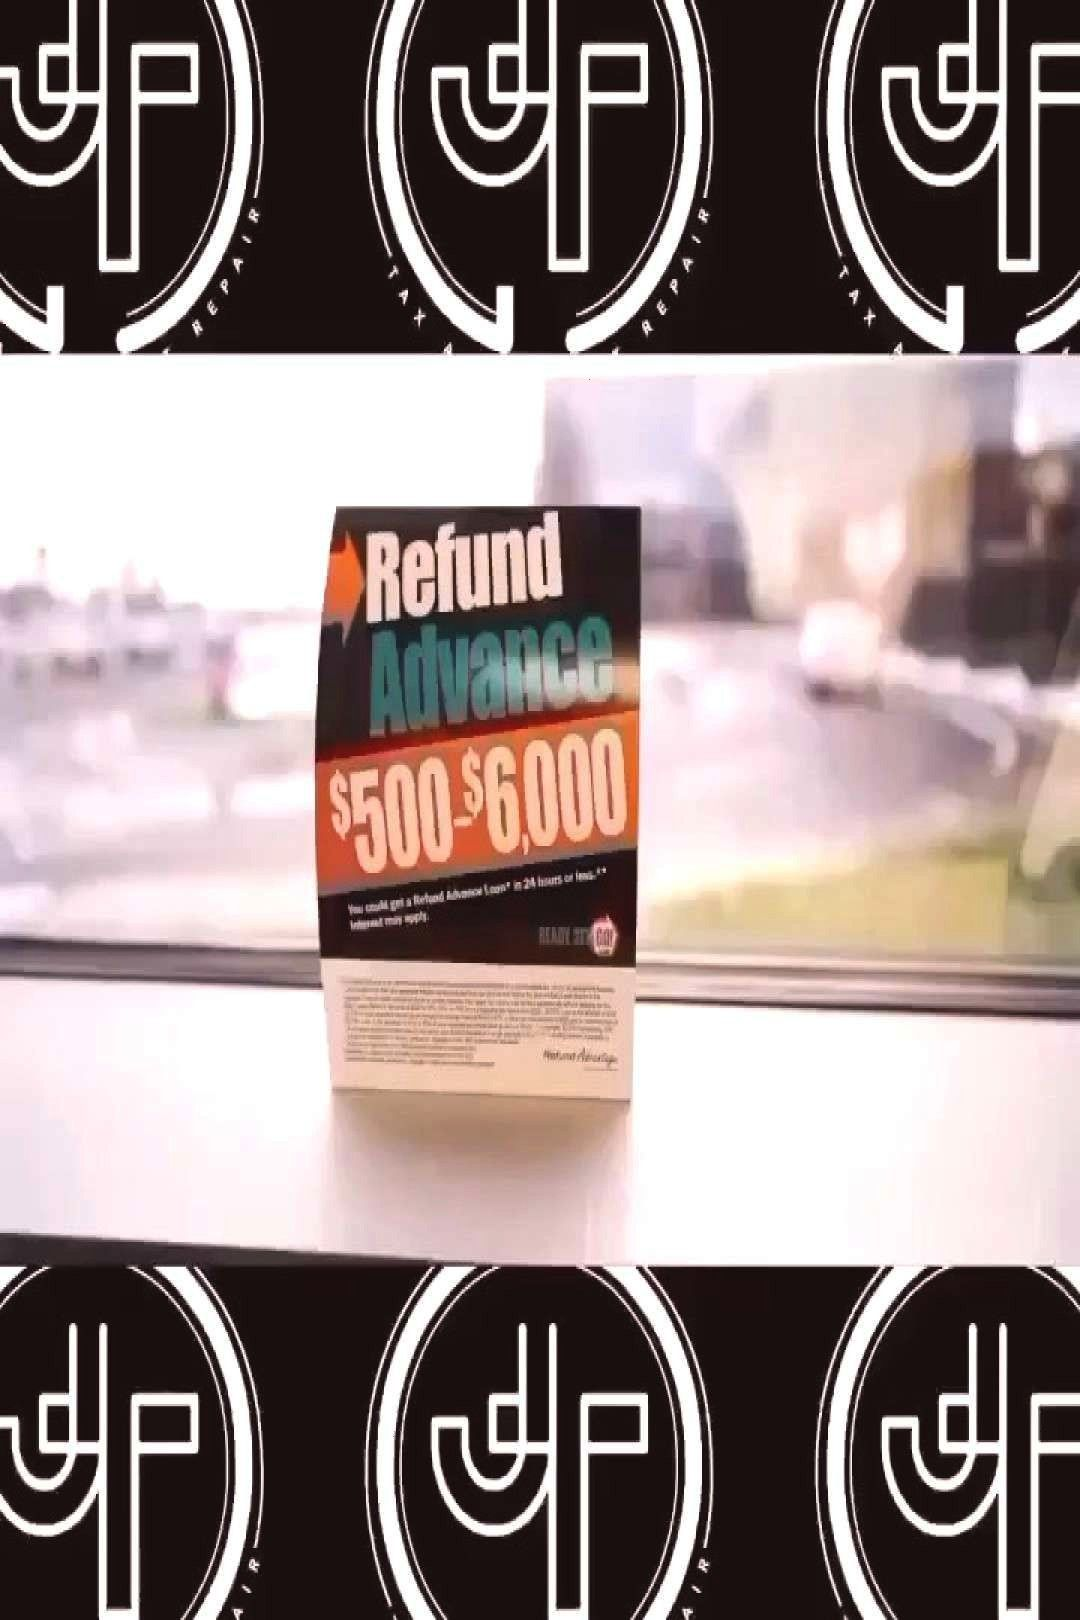 Zero Upfront 6000 Advance refund Loans begin January 12th CYou can find Tax help and more on our websitePay Zero Upfront 6000 Advance refund Loans begin JanuarPay Zero Up...